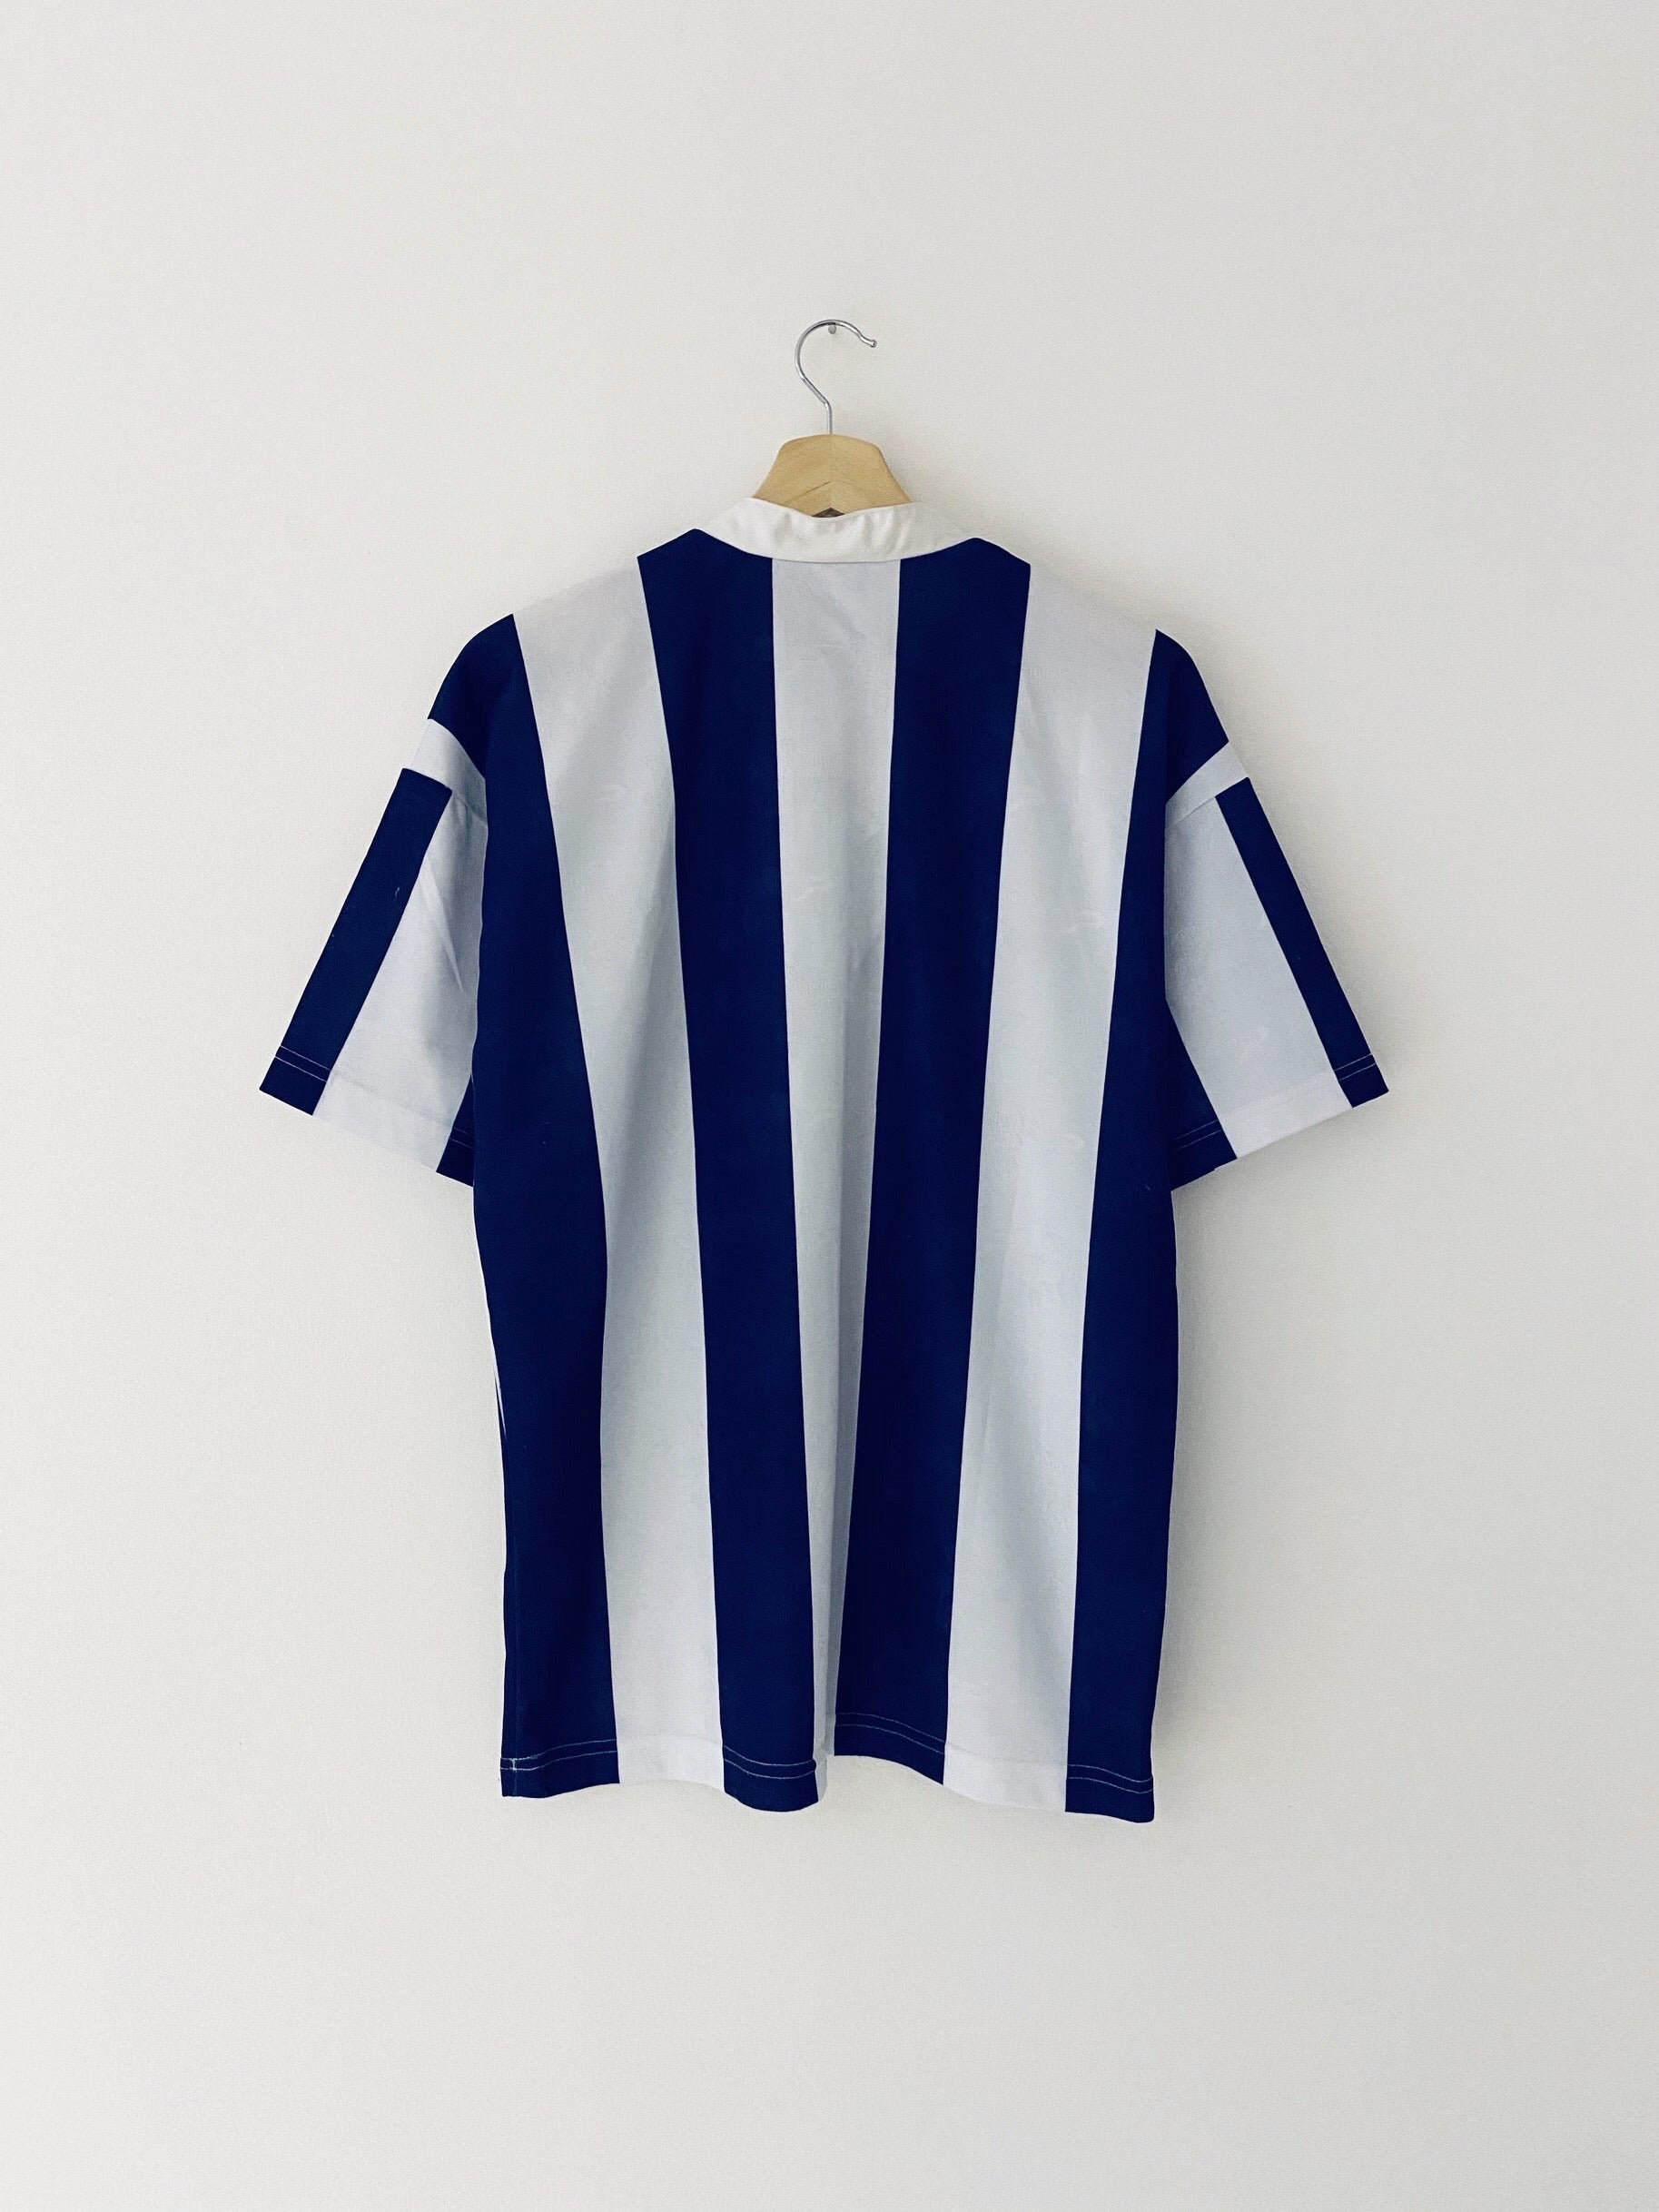 1997/98 West Brom Home Shirt (S) 6.5/10